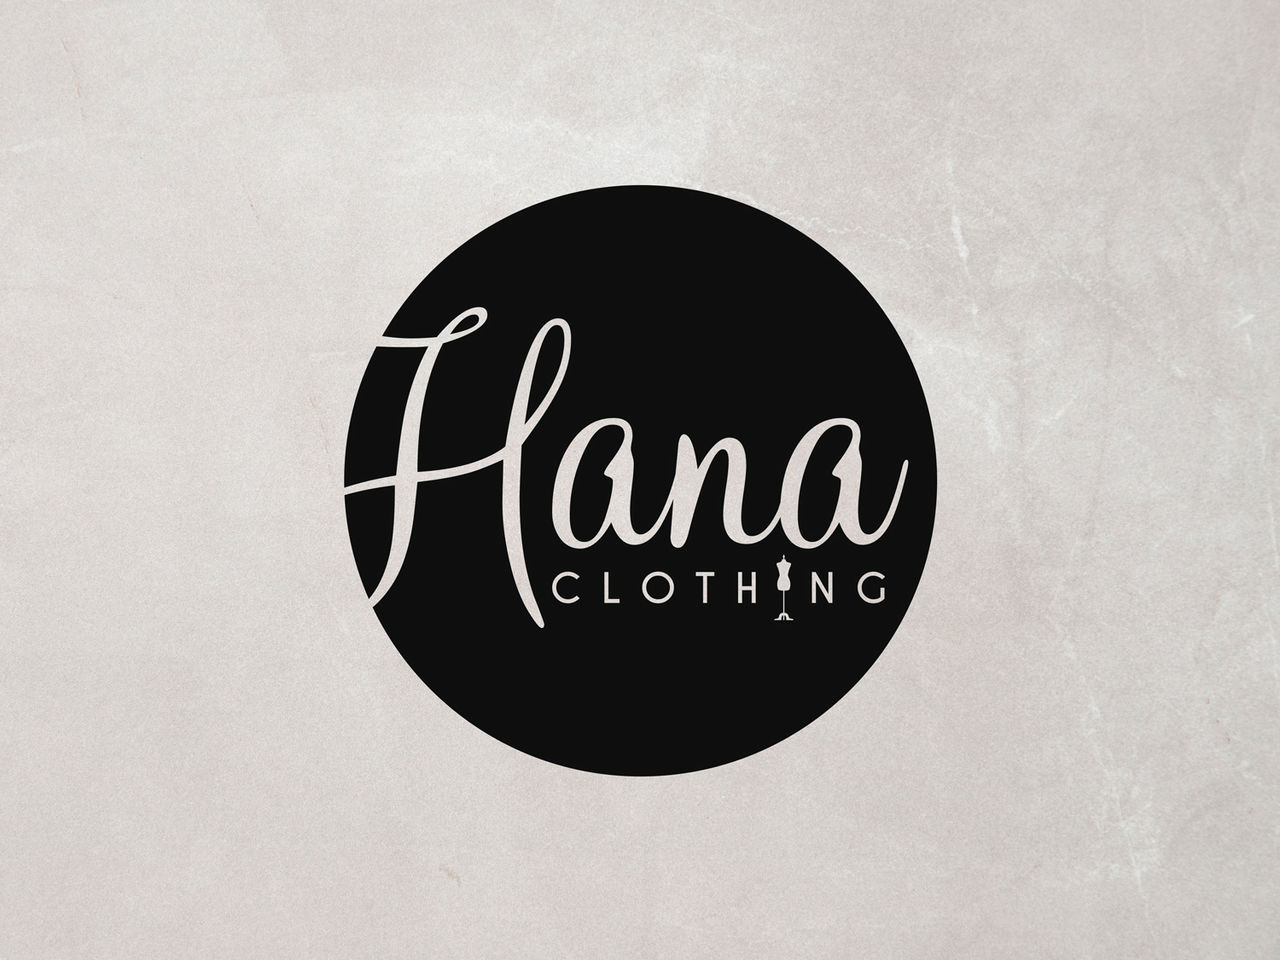 Logo Hana Clothing